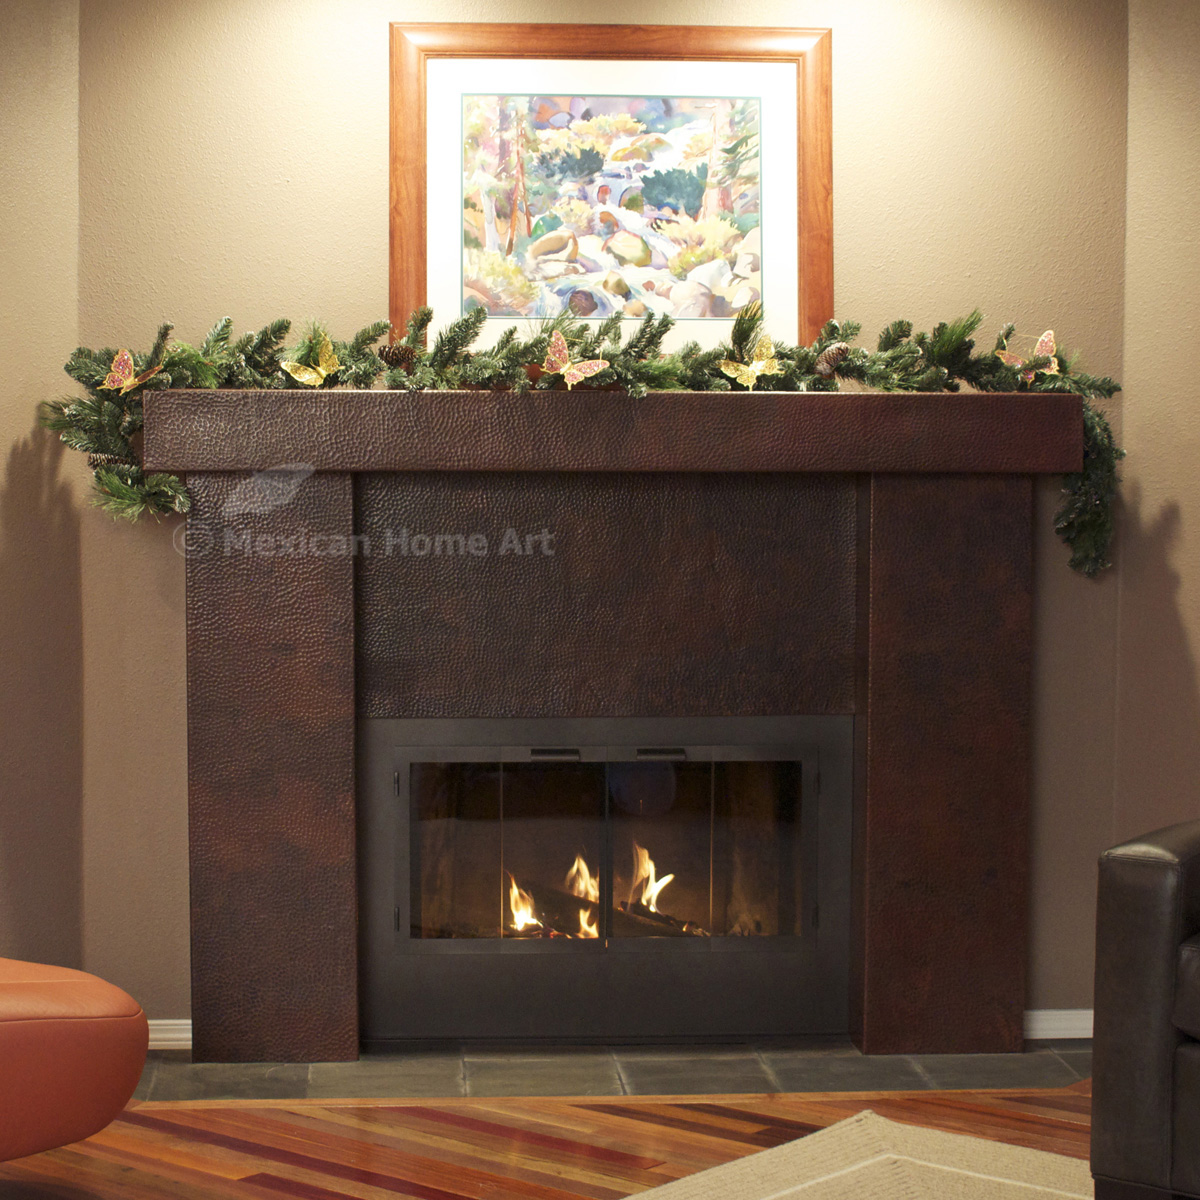 fireplace-with-copper-sheets-panels.jpg